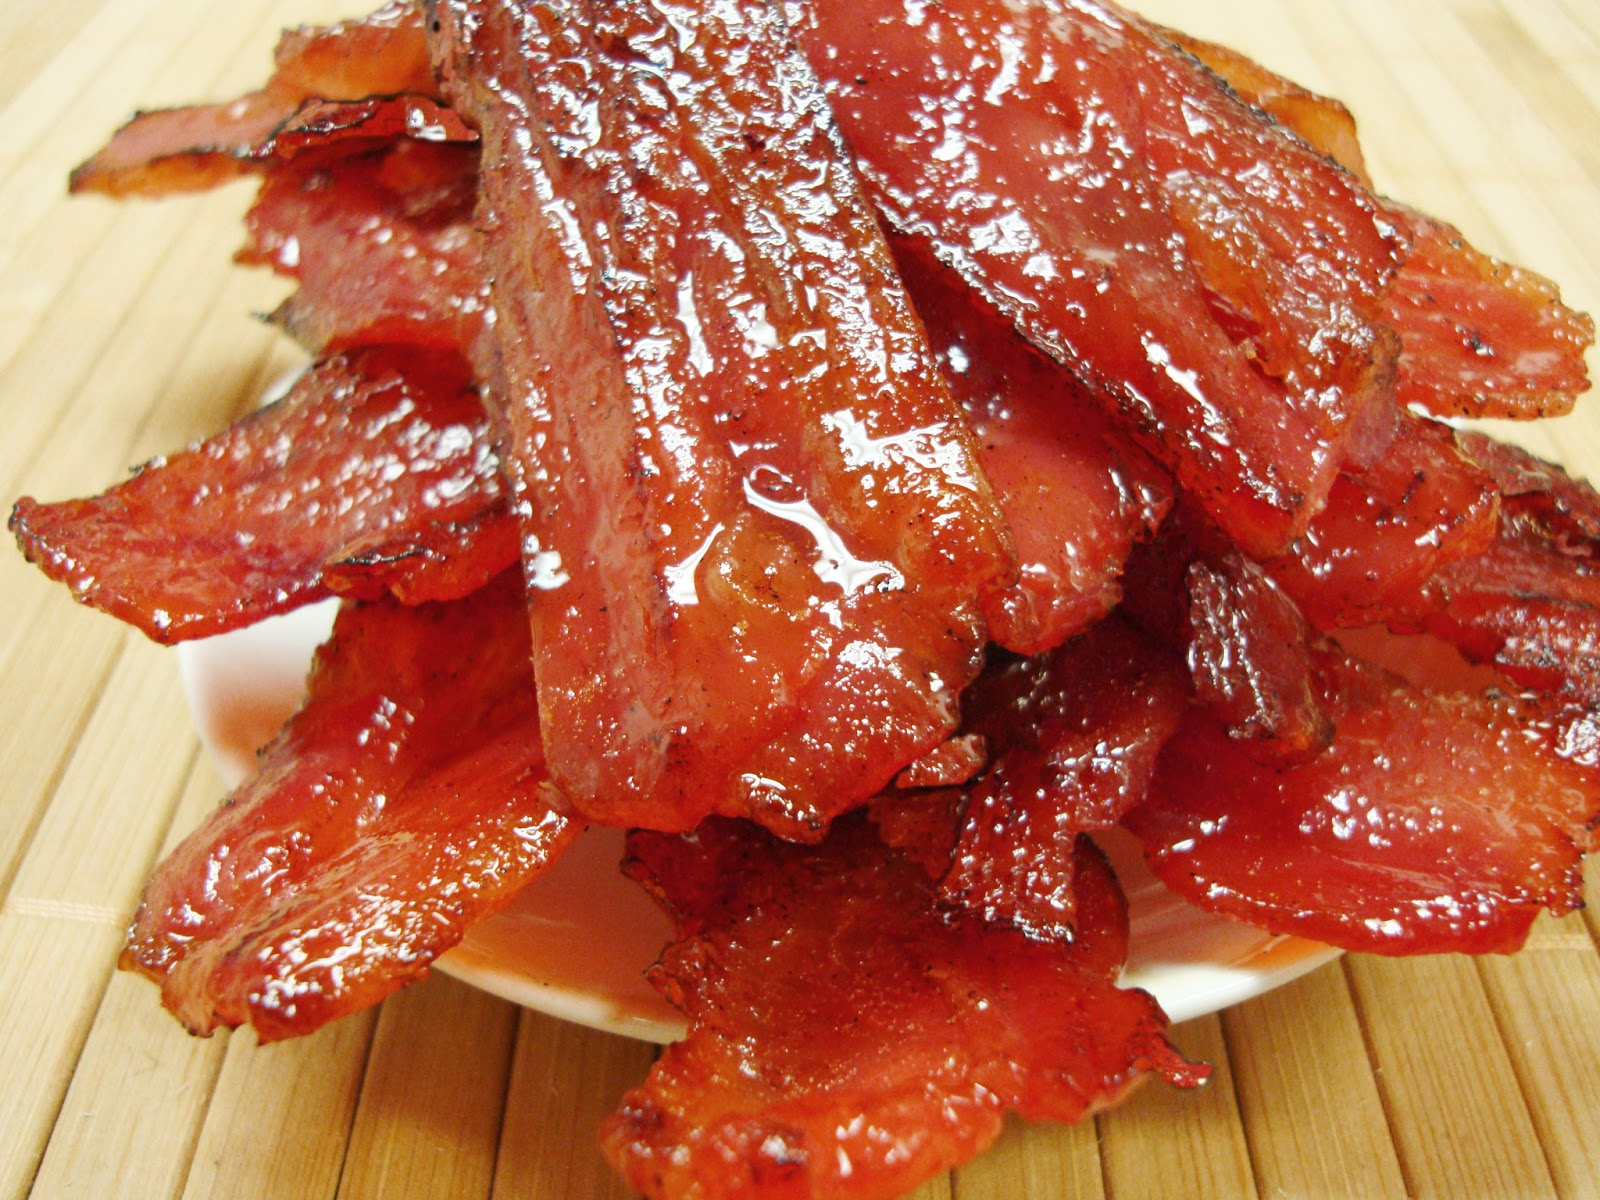 Made to Order Fire-Grilled Oriental Bak kwa.